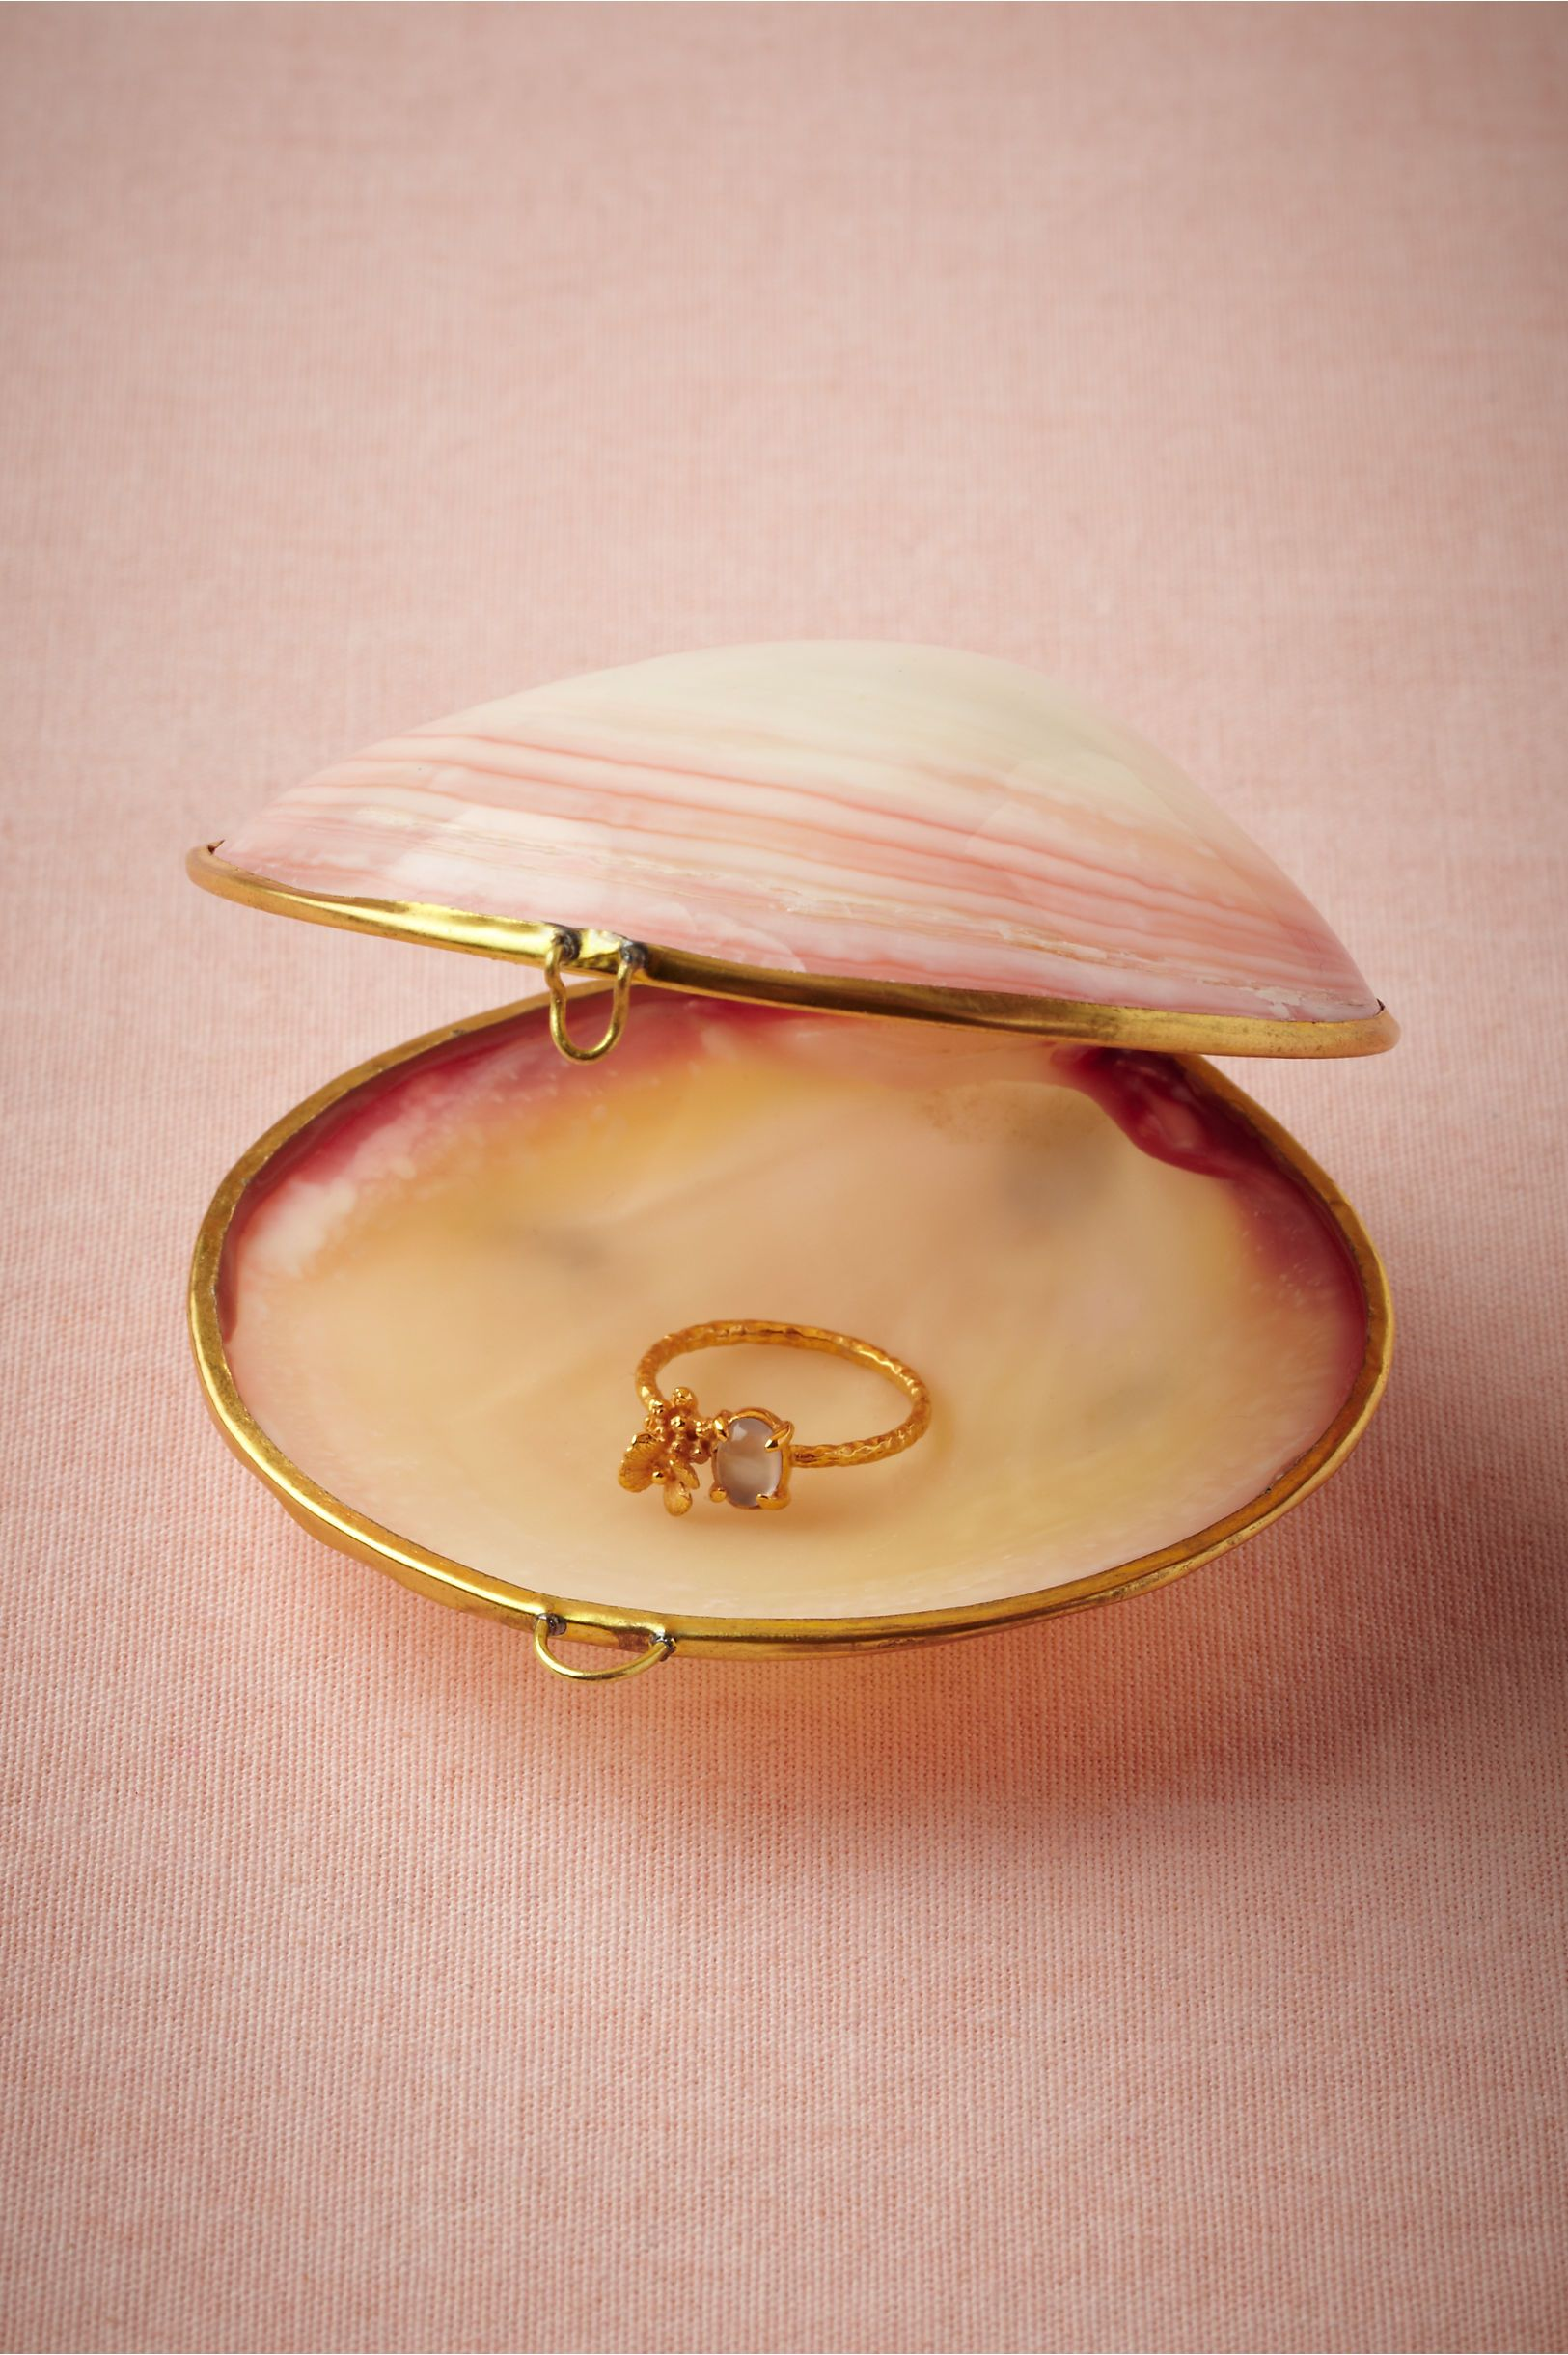 Sulu Sea Ring Holder Traditional Engagement Rings Rings Best